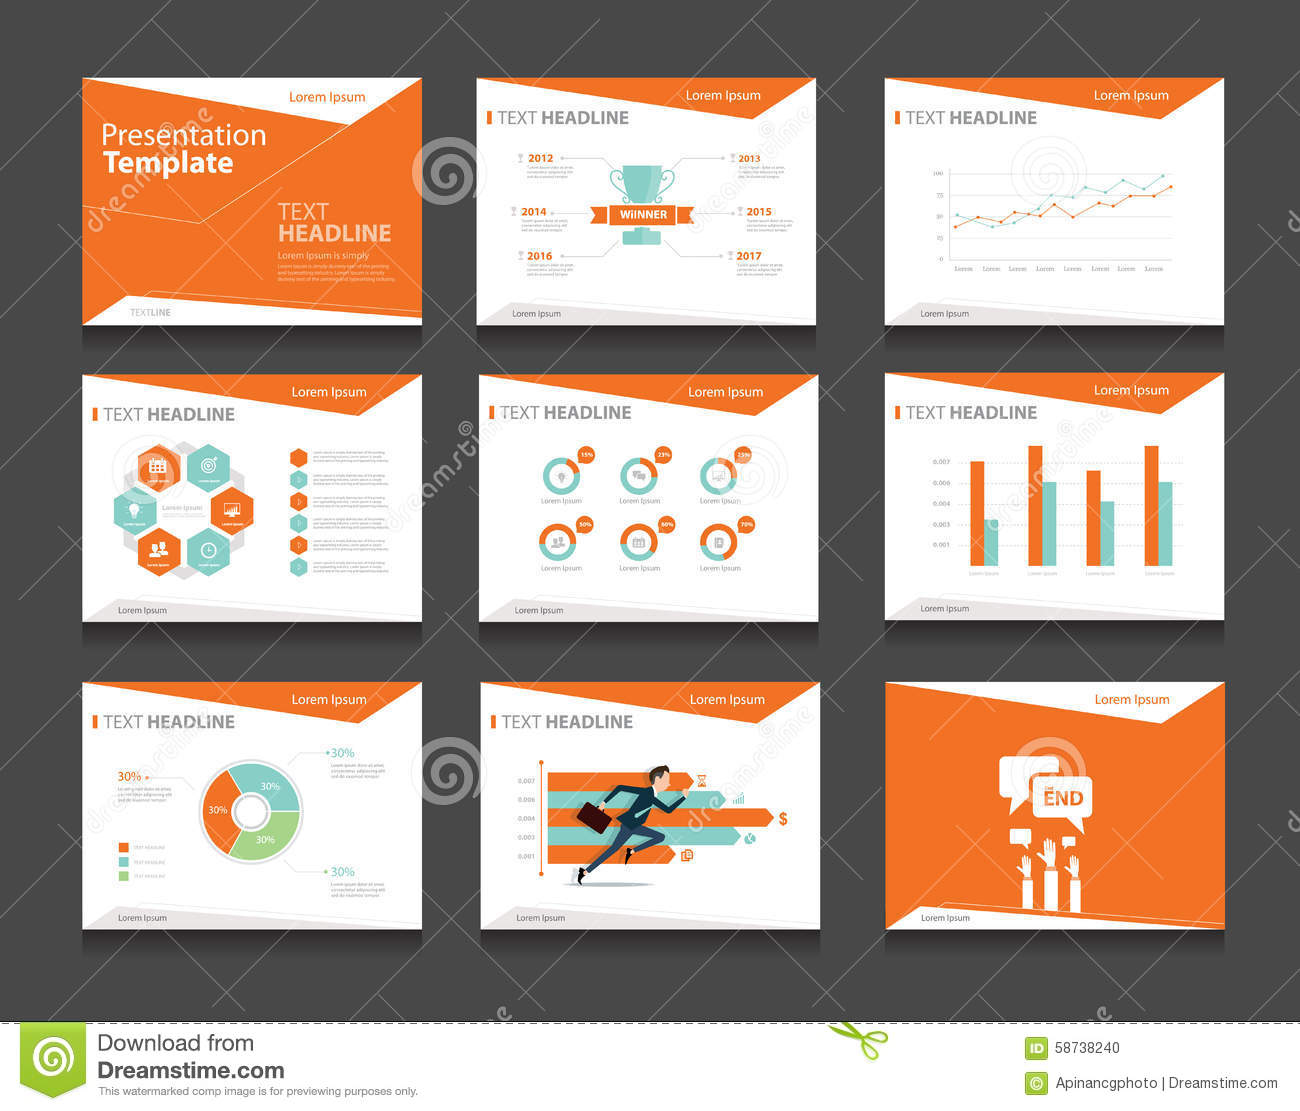 Business presentation and powerpoint template slides background orange infographic business presentation template set powerpoint template design backgrounds stock illustration accmission Images